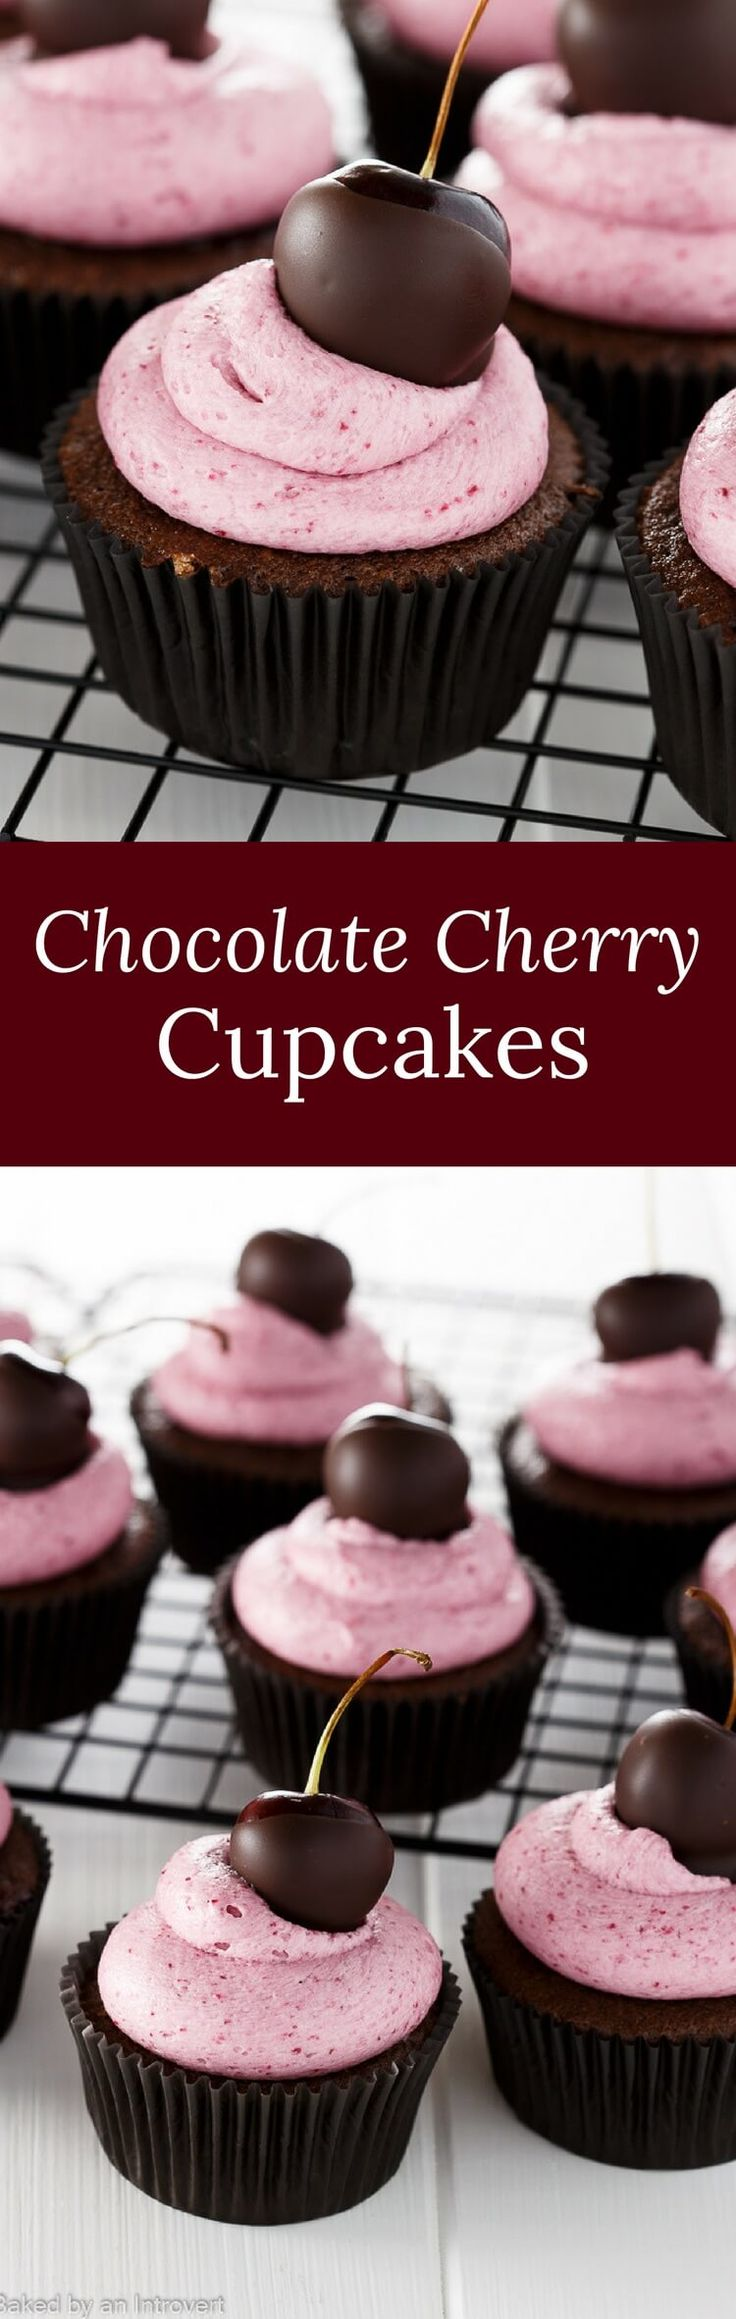 Chocolate Cherry Cupcakes - Chocolate cupcakes filled with cherry preserves and topped with cherry buttercream frosting.